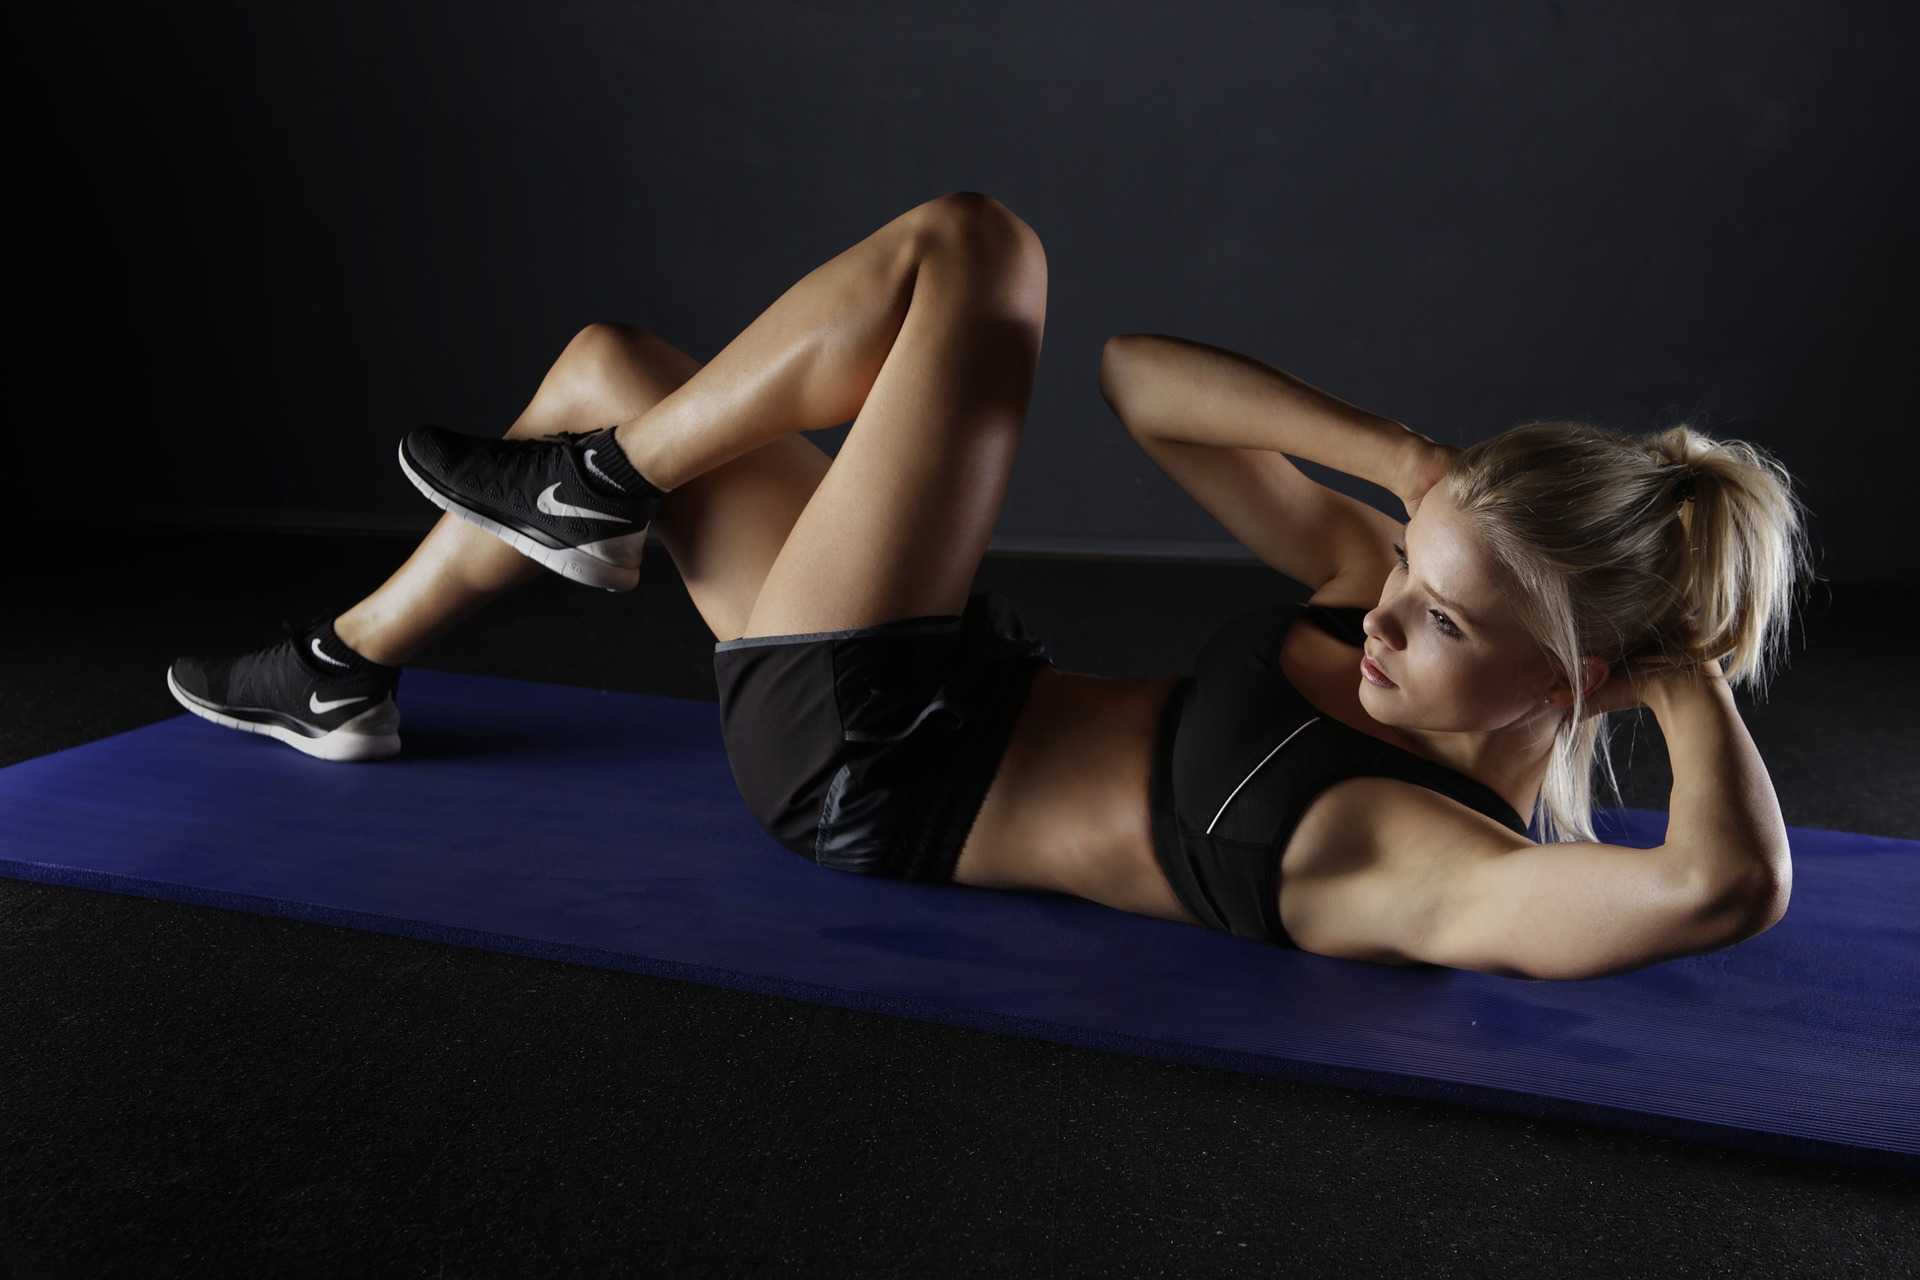 Setting Fitness Goals the Smart Way